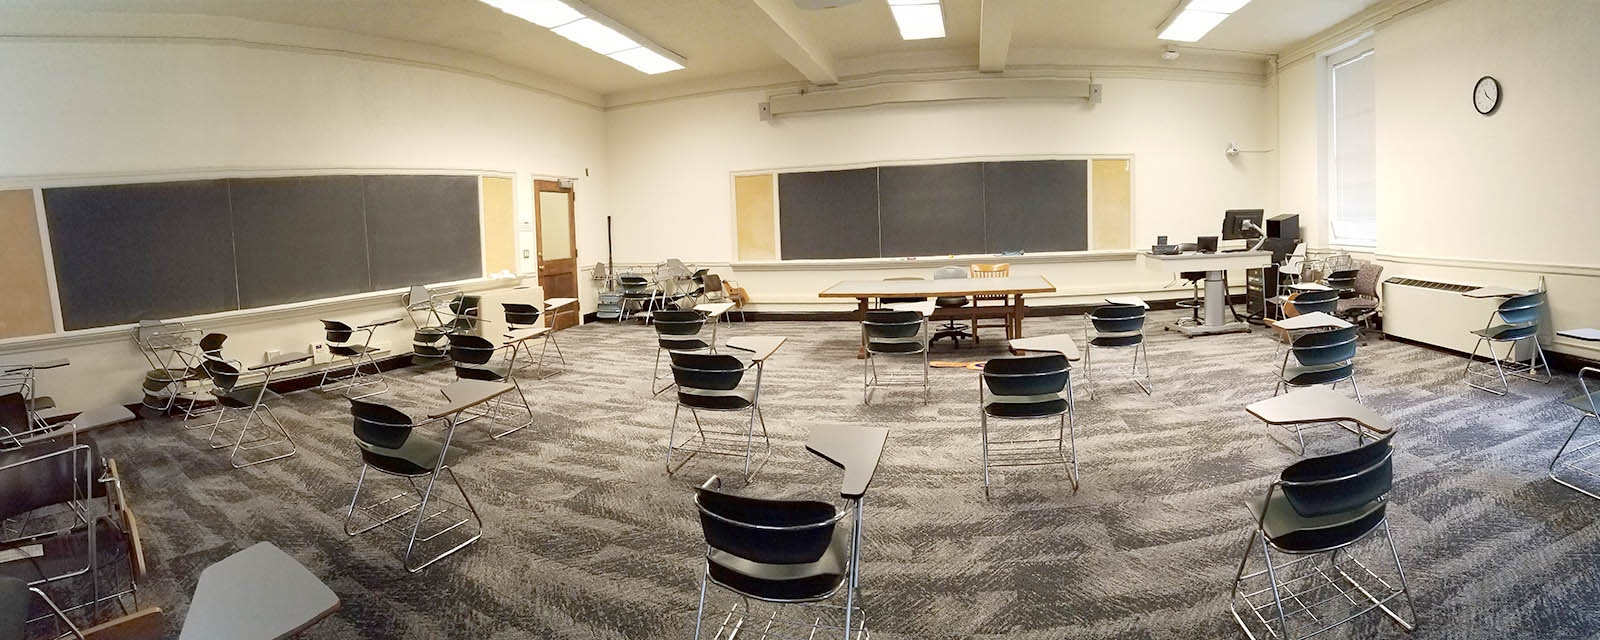 Panorama of Maxwell 111 from front to rear, movable chairs, teaching station front left